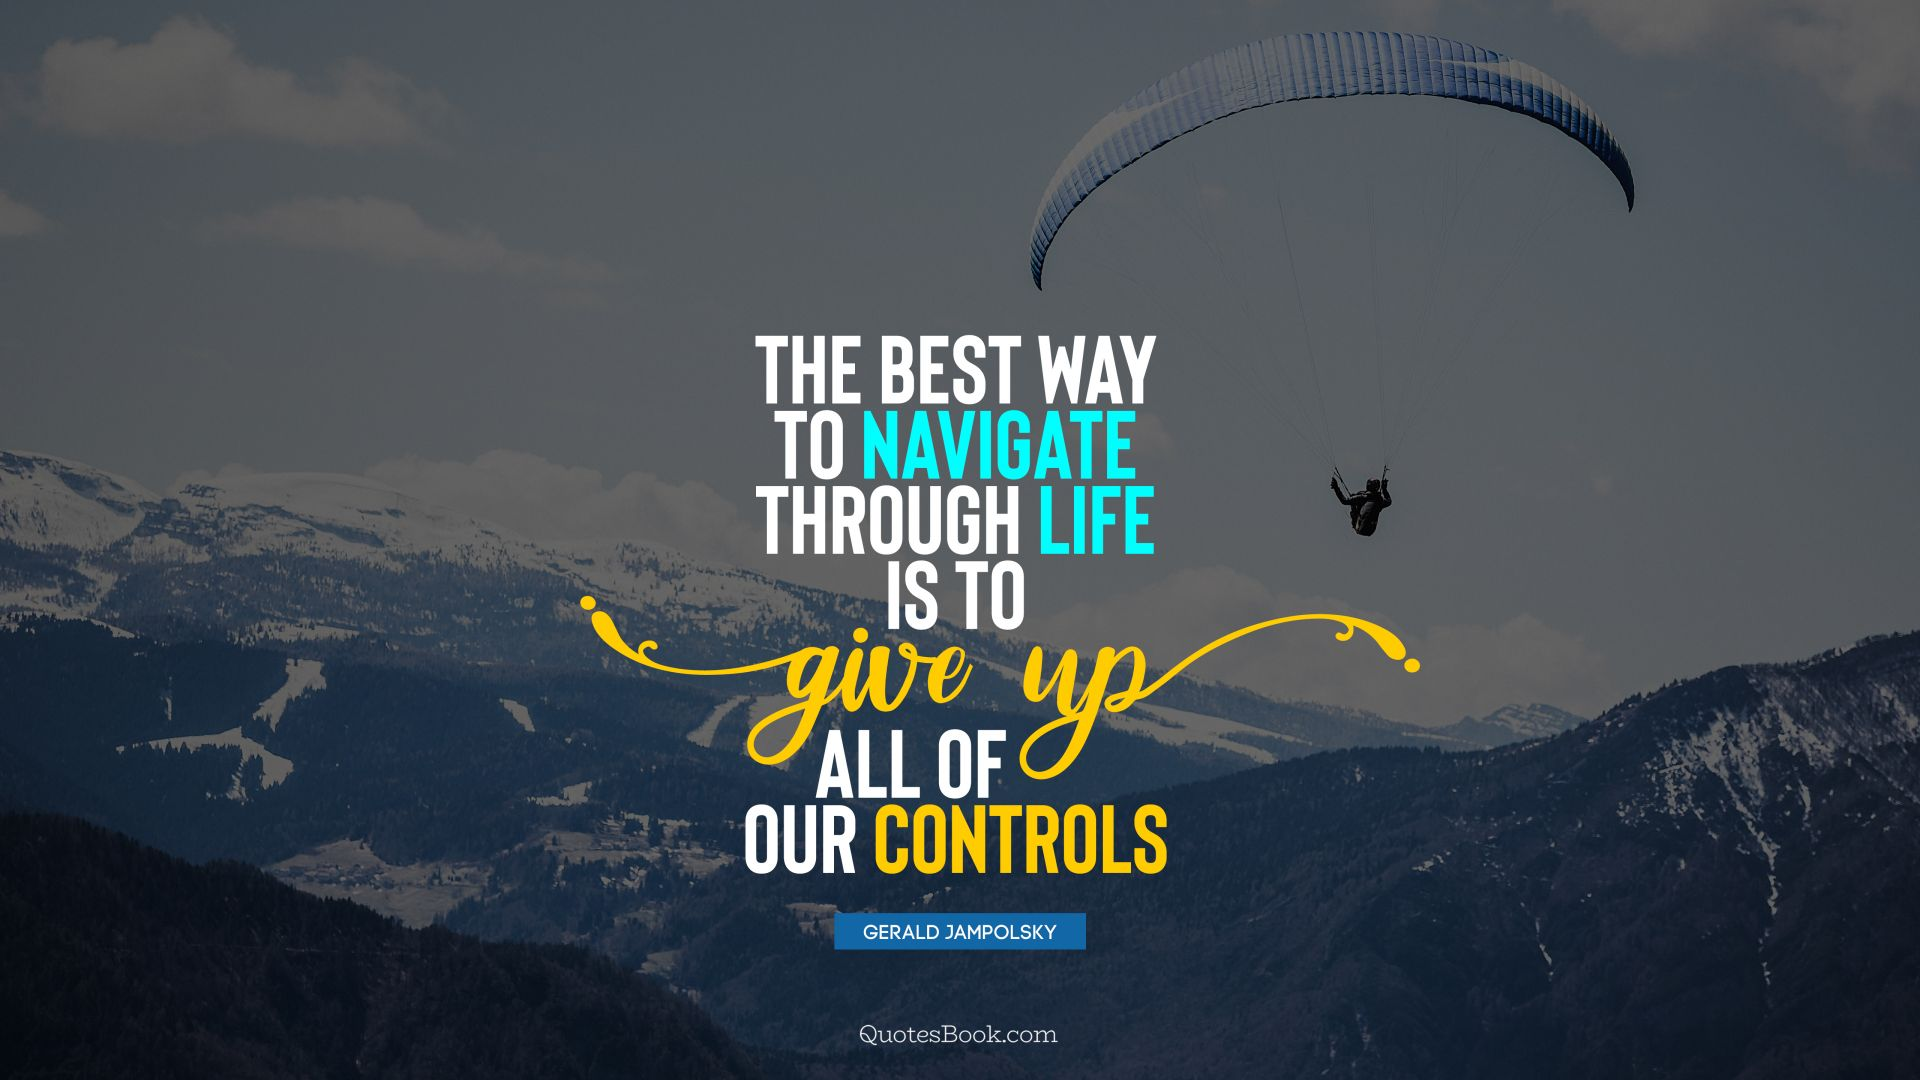 The best way to navigate through life is to give up all of our controls. - Quote by Gerald Jampolsky